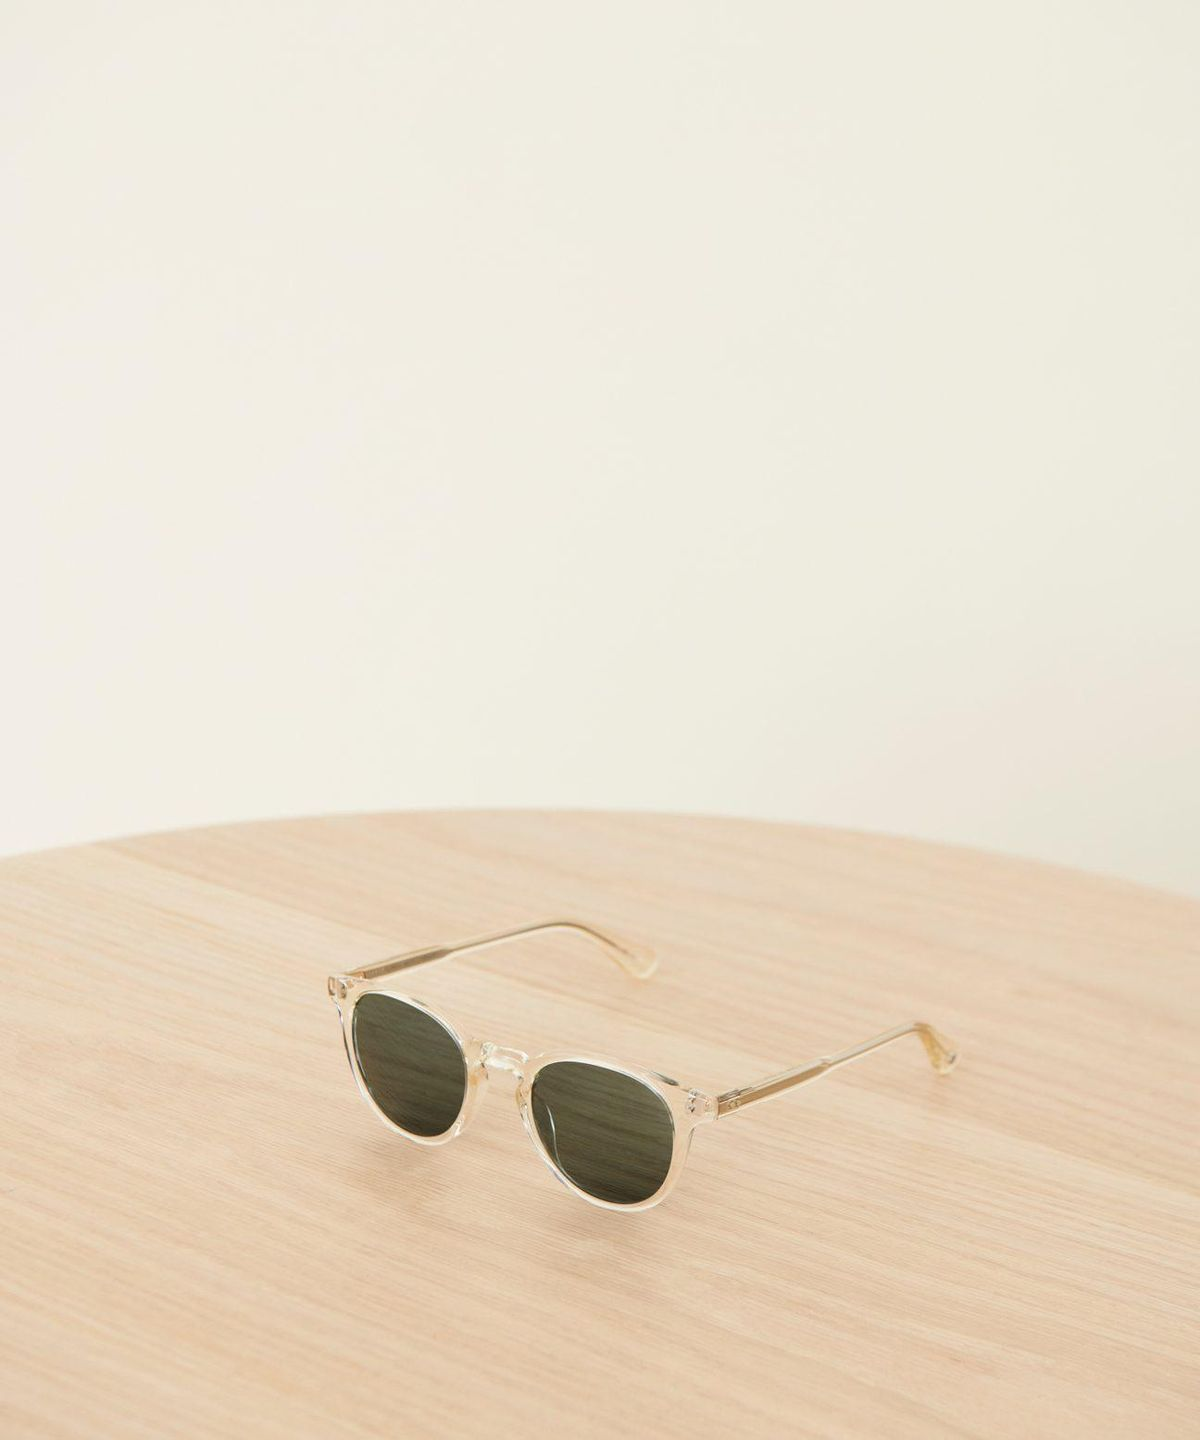 Clement Sunglasses in Pure Glass